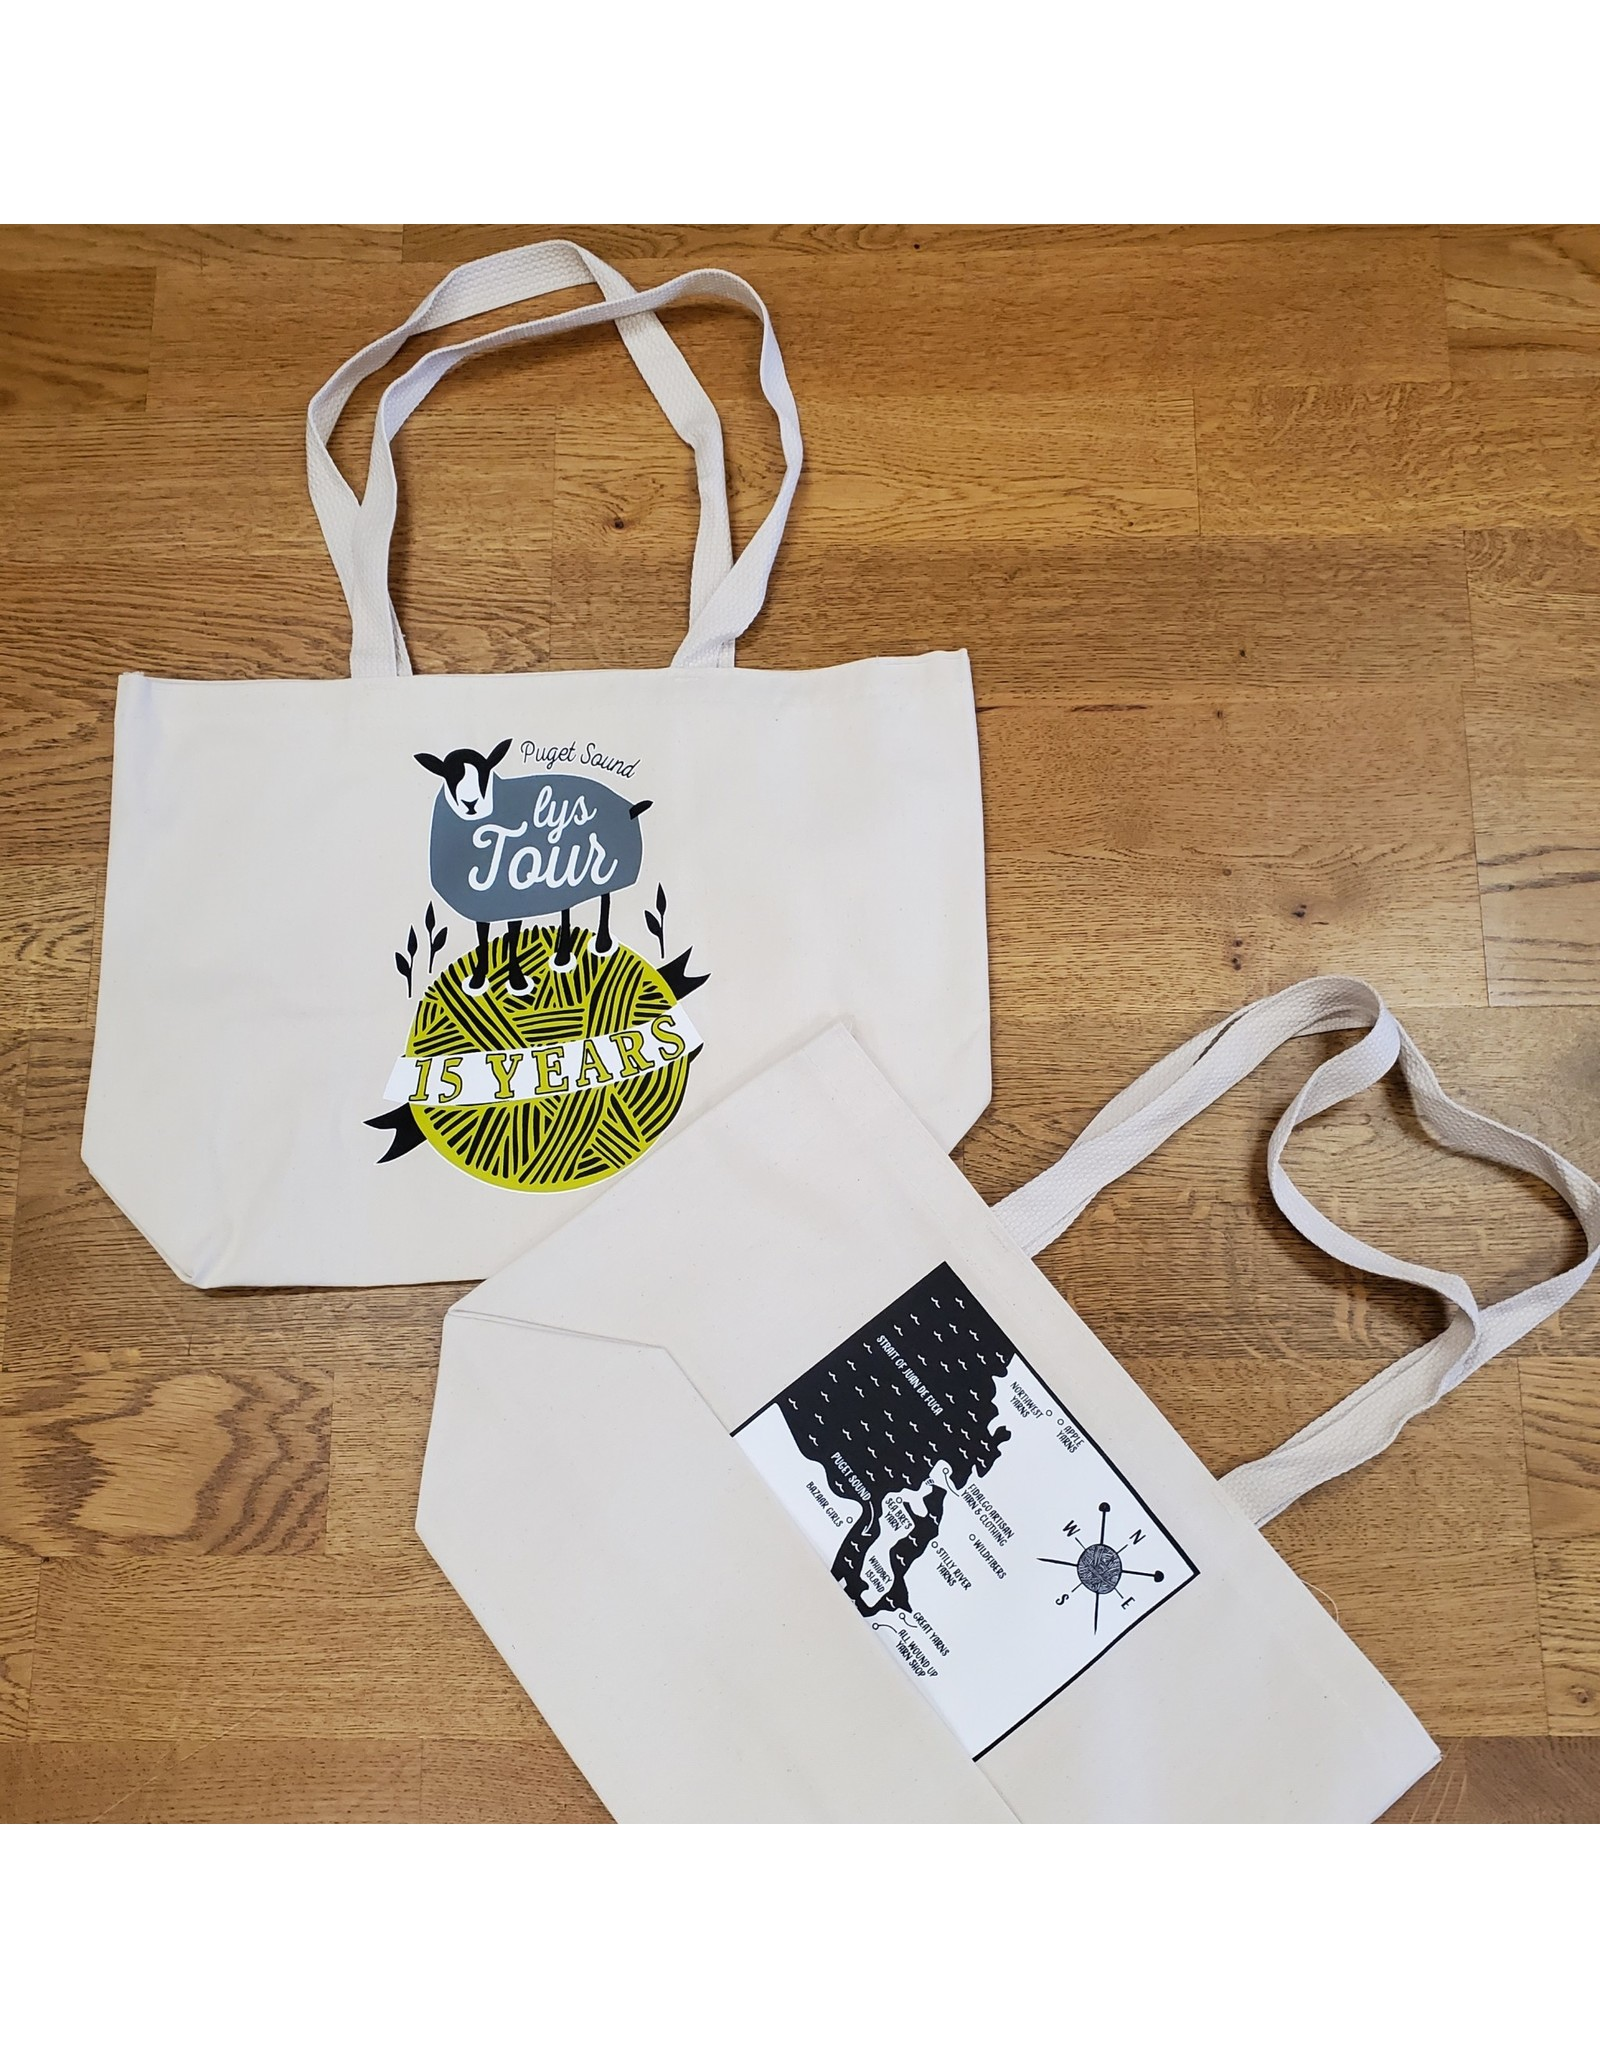 Puget Sound Yarn Tour LYS 15th Anniversary Tote (2021)